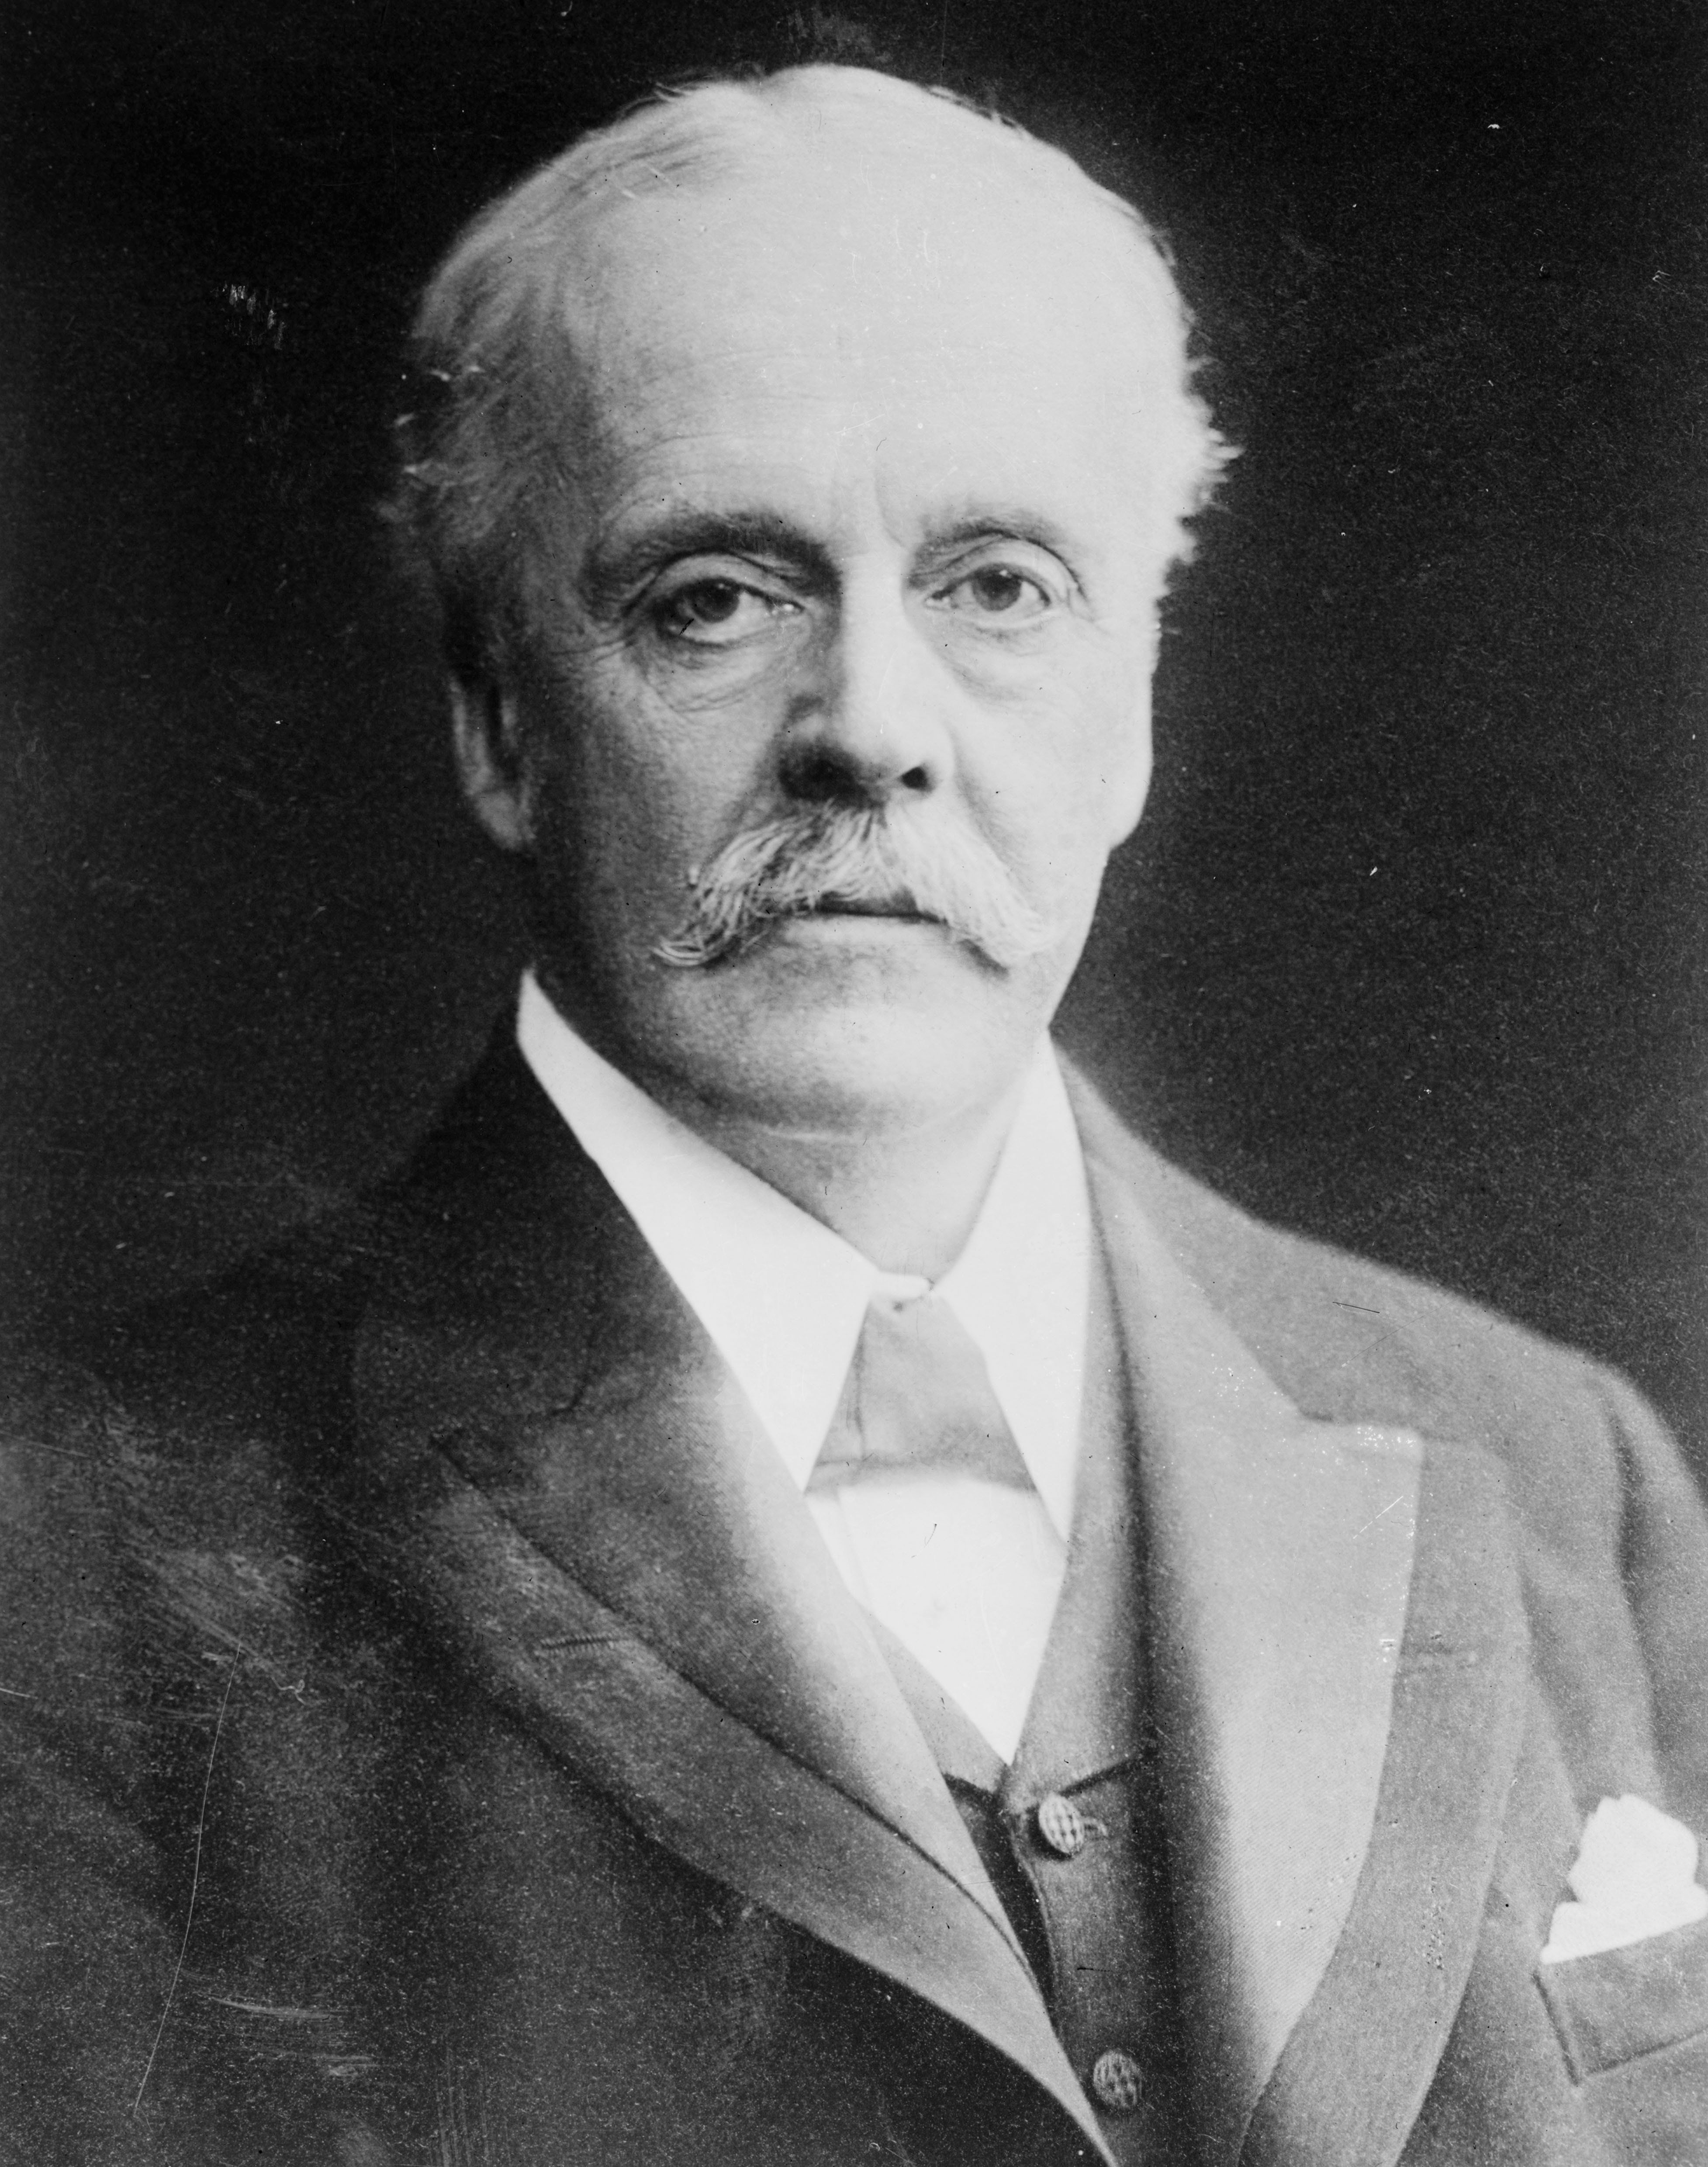 Arthur James Balfour, British Conservative politician and statesman. UK Prime Minister (1902-1905). In the Balfour Declaration, 1917, promising Jews a national home in Palestine. (Photo by: Photo12/UIG via Getty Images)